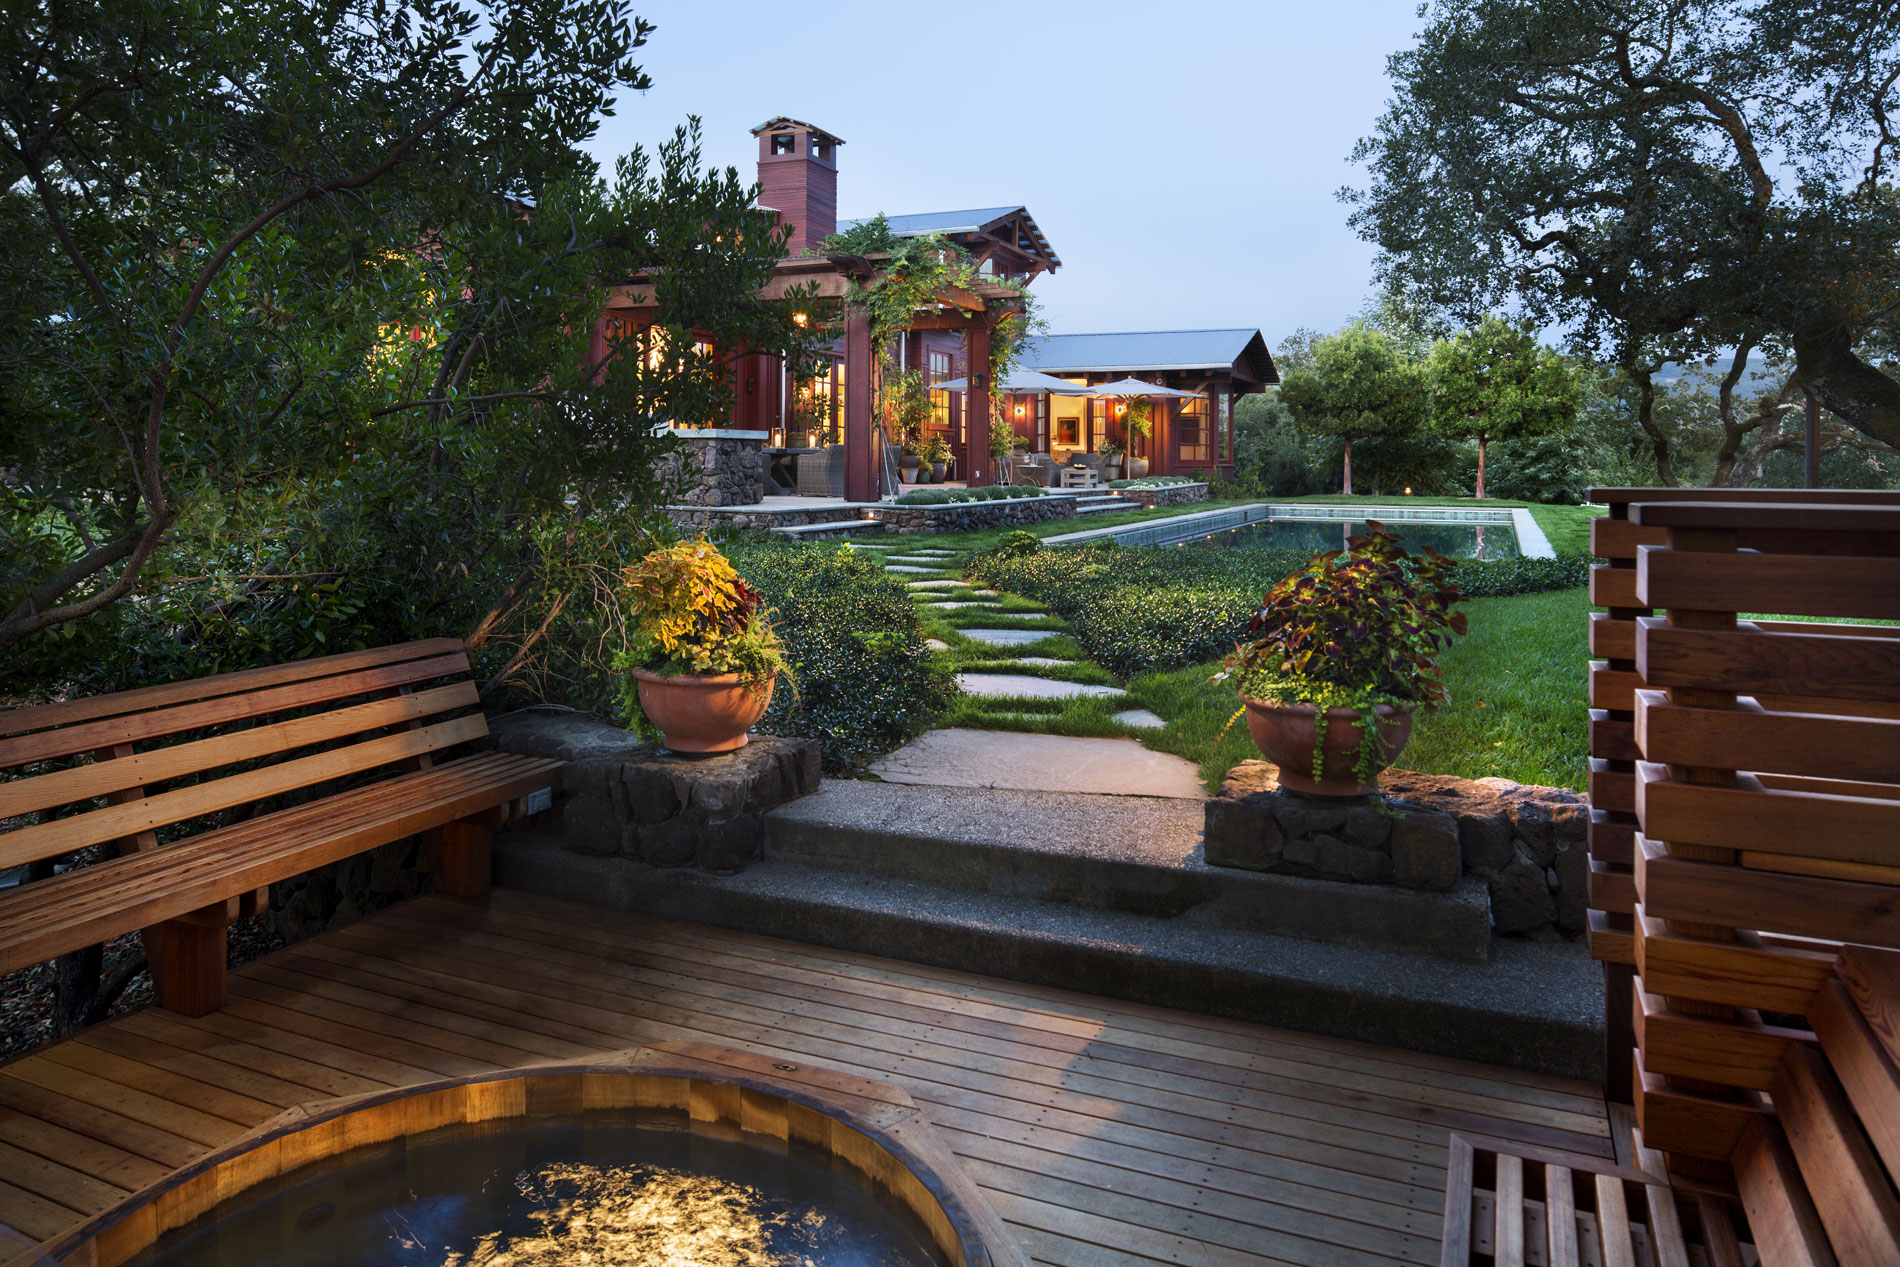 View from the spa to the main house. (Photo credit: Peter Aaron/OTTO for Robert A.M. Stern Architects)